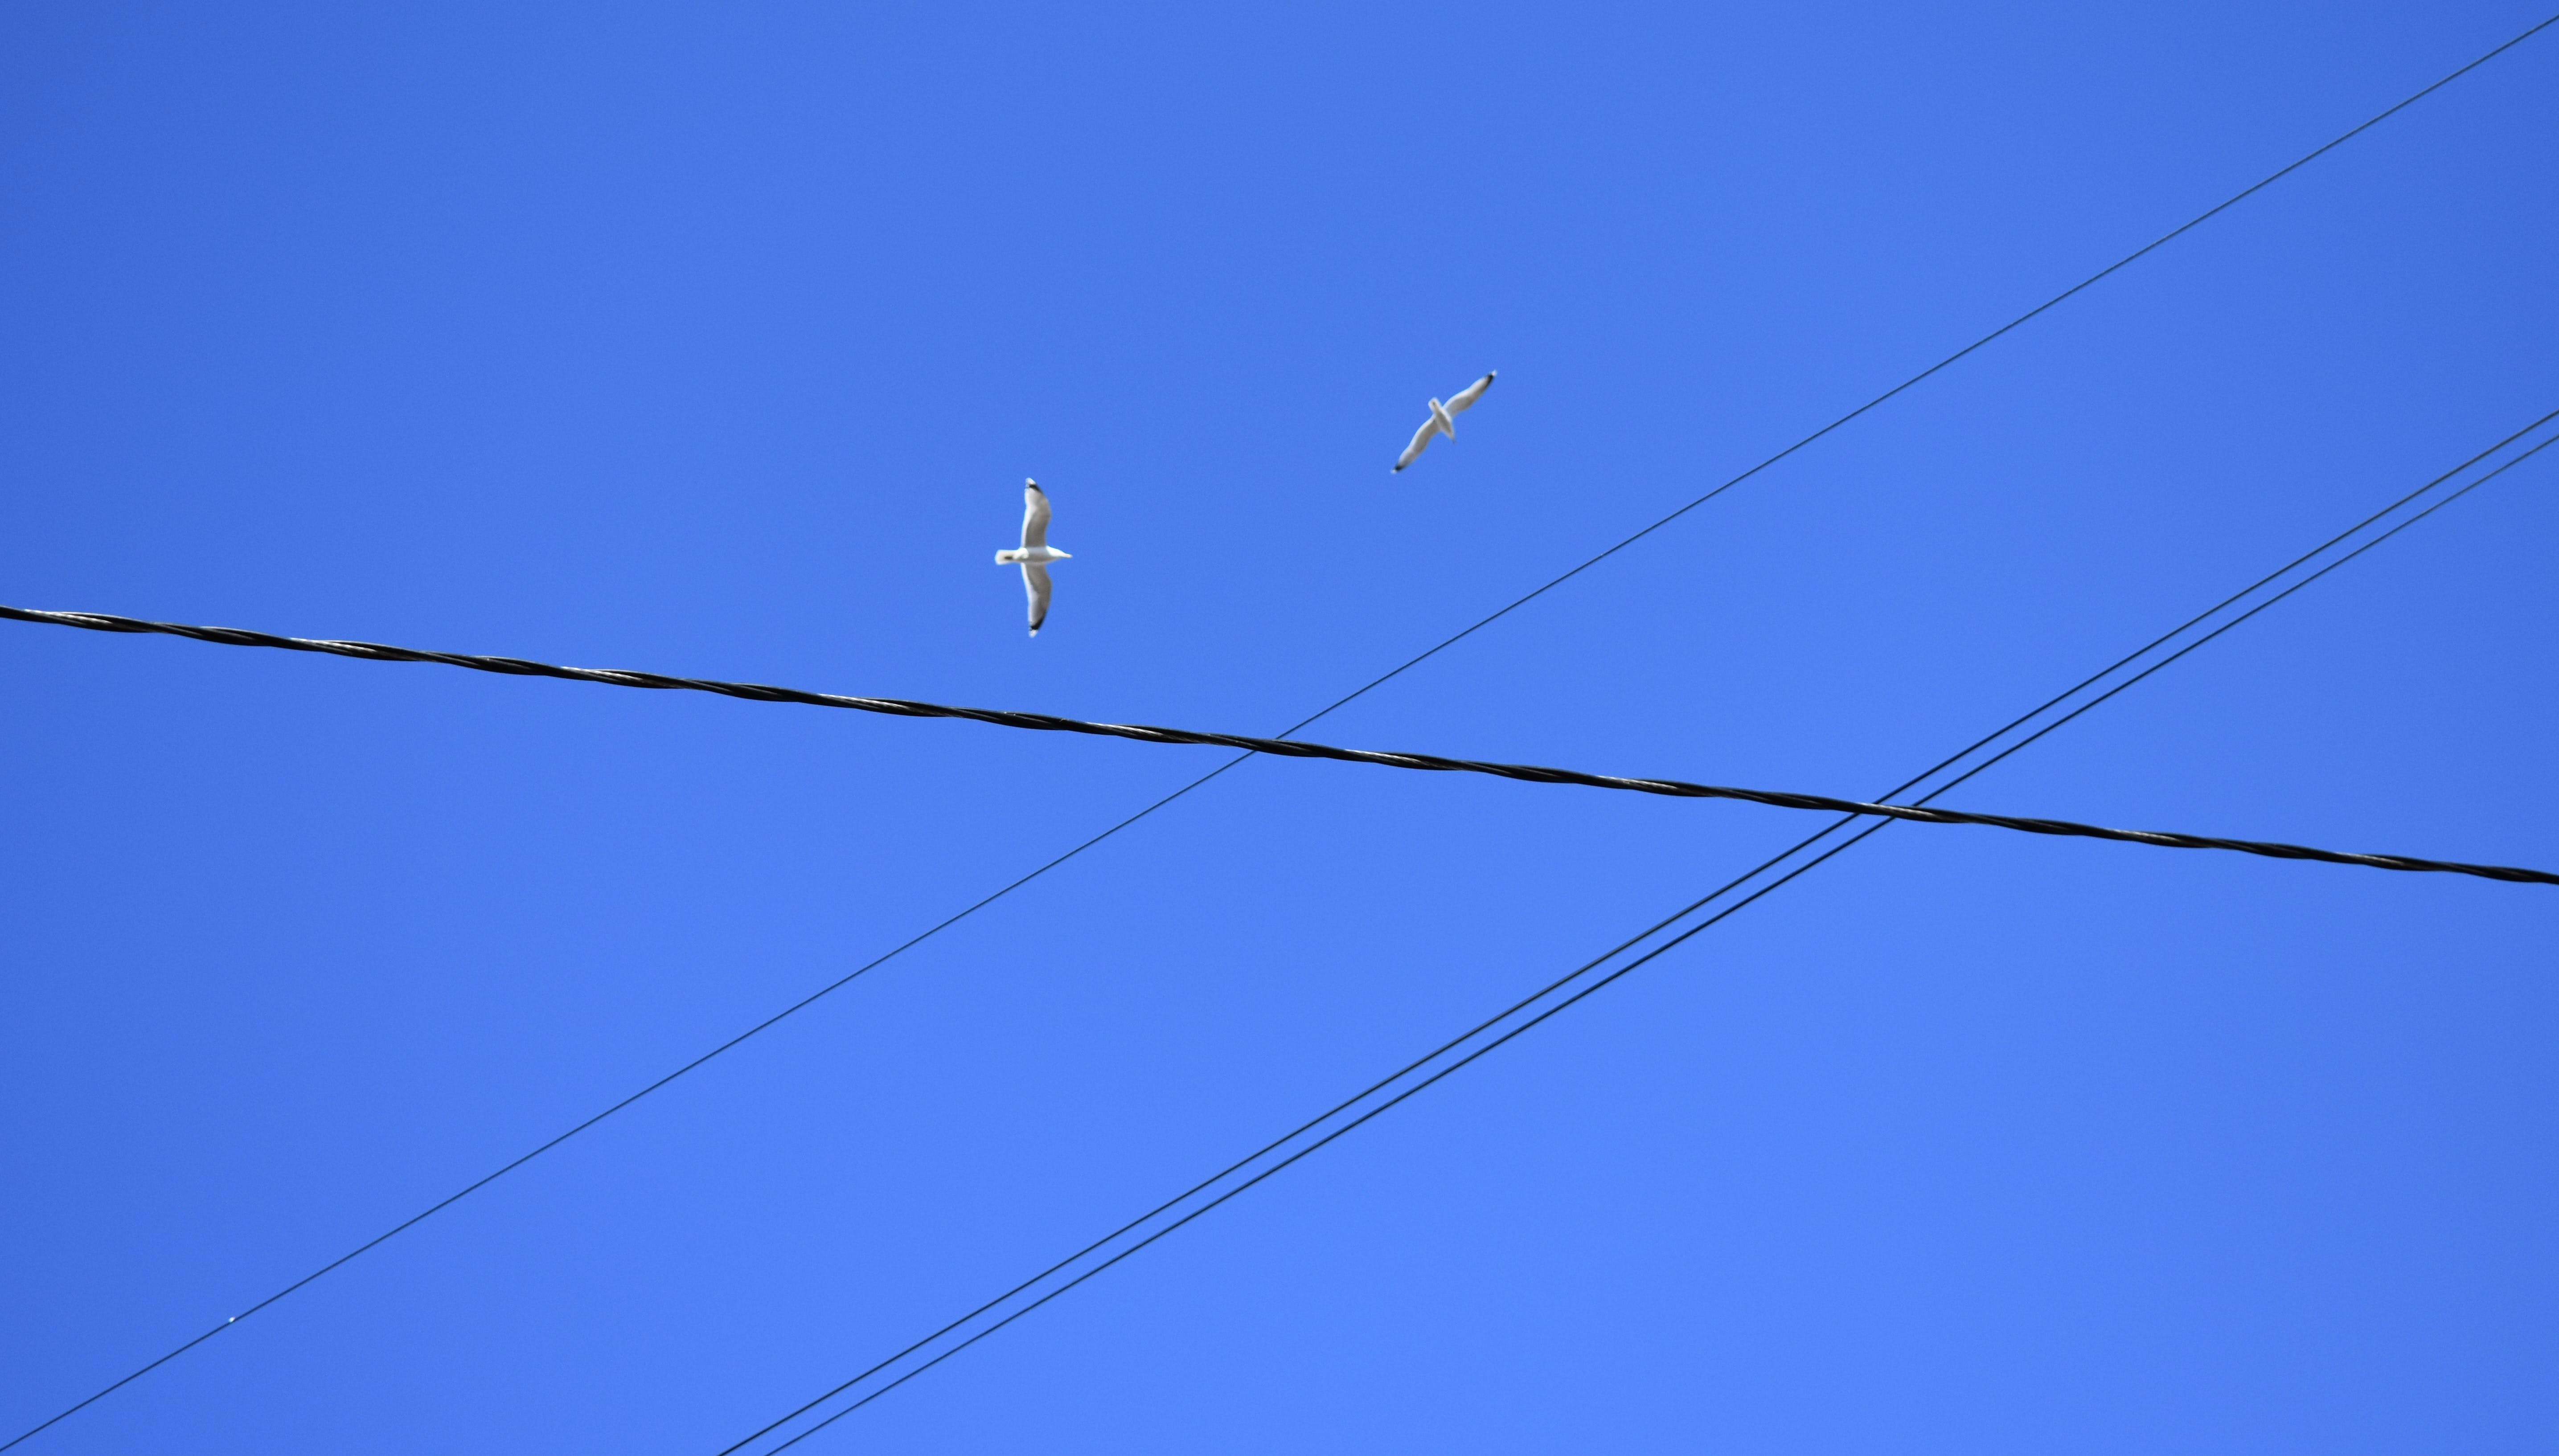 Free stock photo of blue sky, city sky, couple, electrical cables